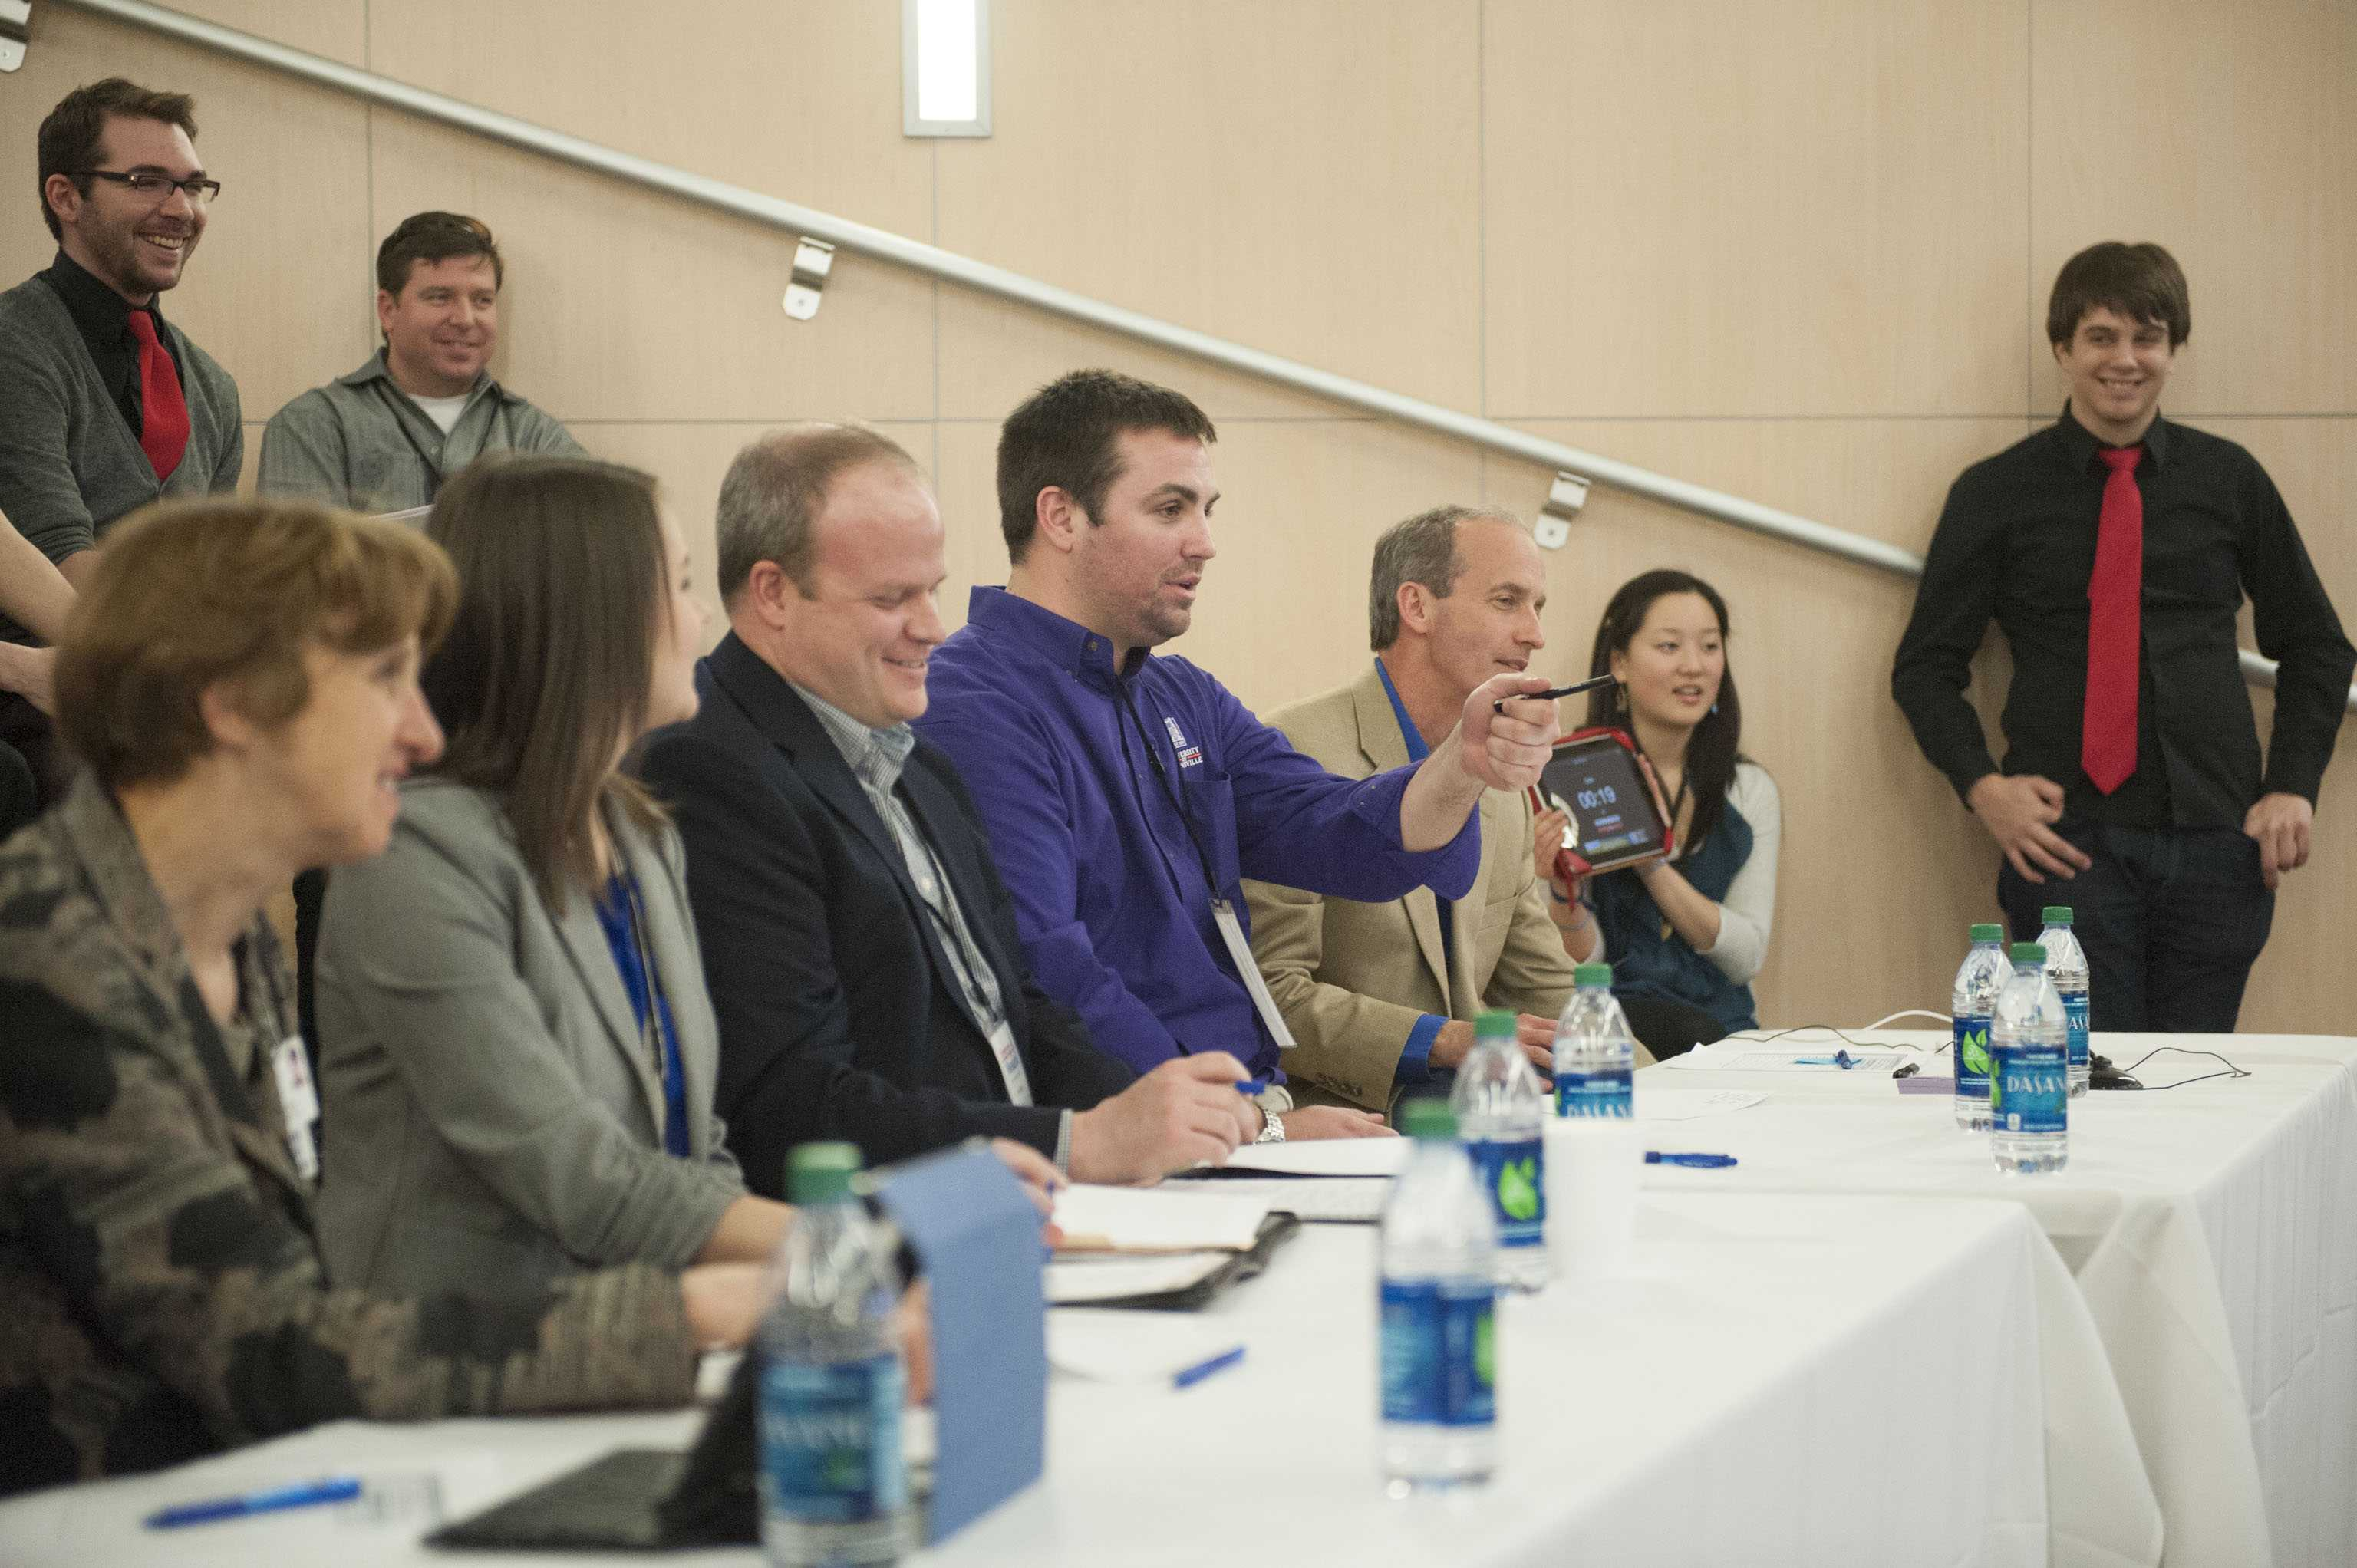 The judges at Startup Weekend Evansville 2015 ask questions about a participant's idea during the Friday round. At this stage each year, 10 participants are selected to move on to the final stages.